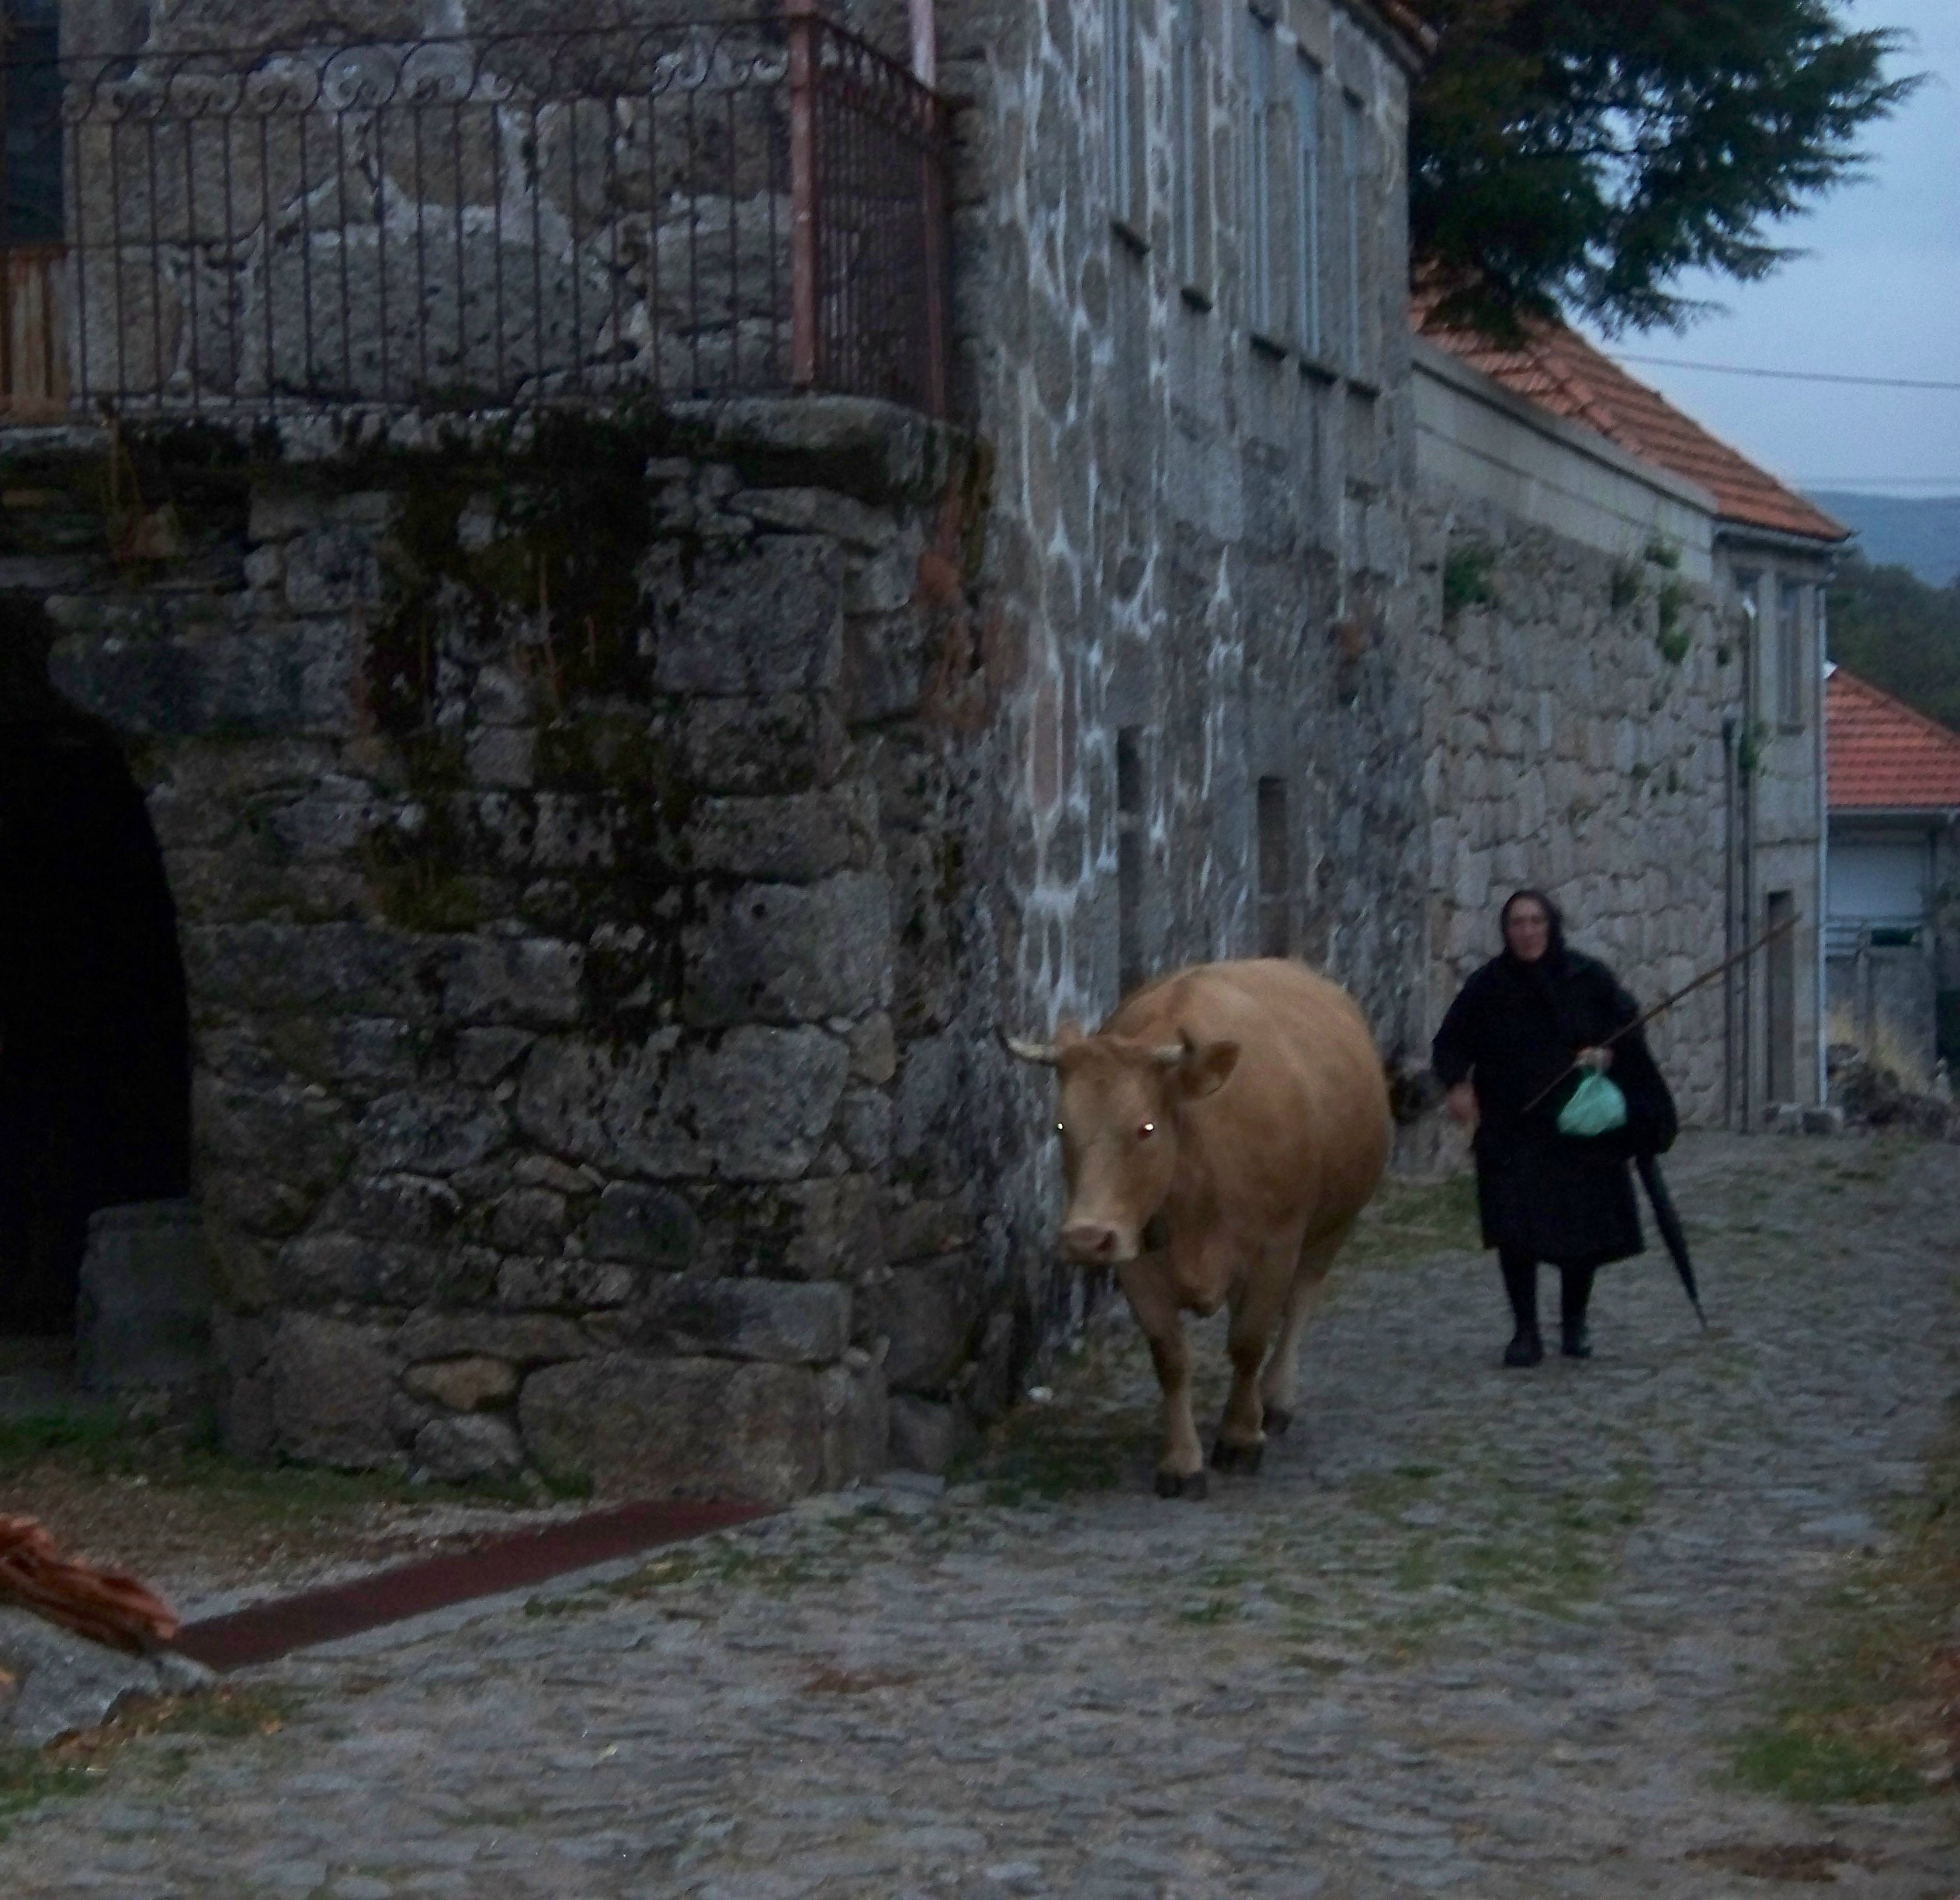 Dusk in Castro Laboreiro brings all the animals home.